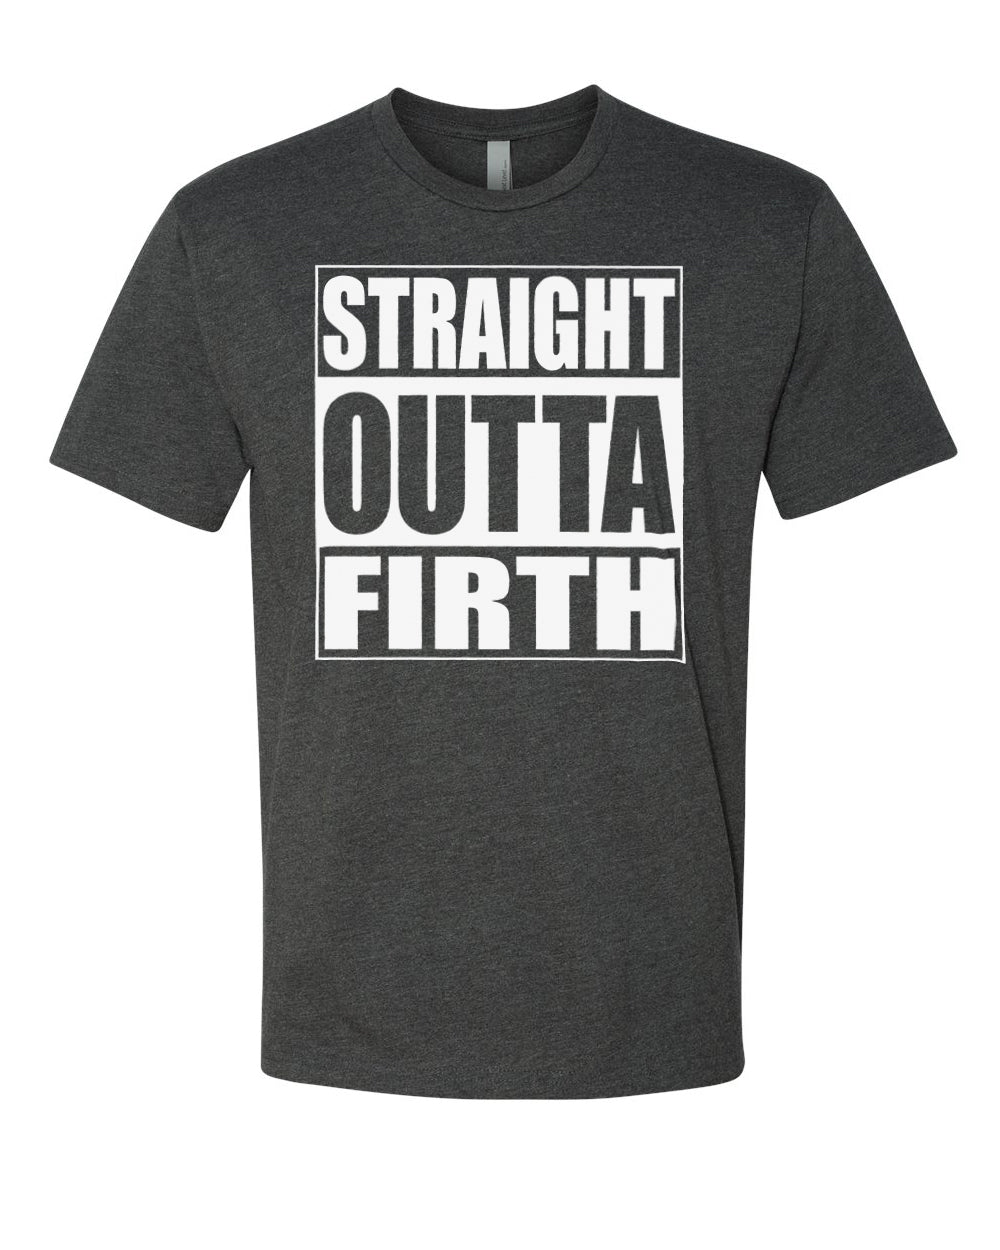 FIRTH HS – Next Level Fitted Crew Tee – Straight Outta Firth (White/Charcoal)